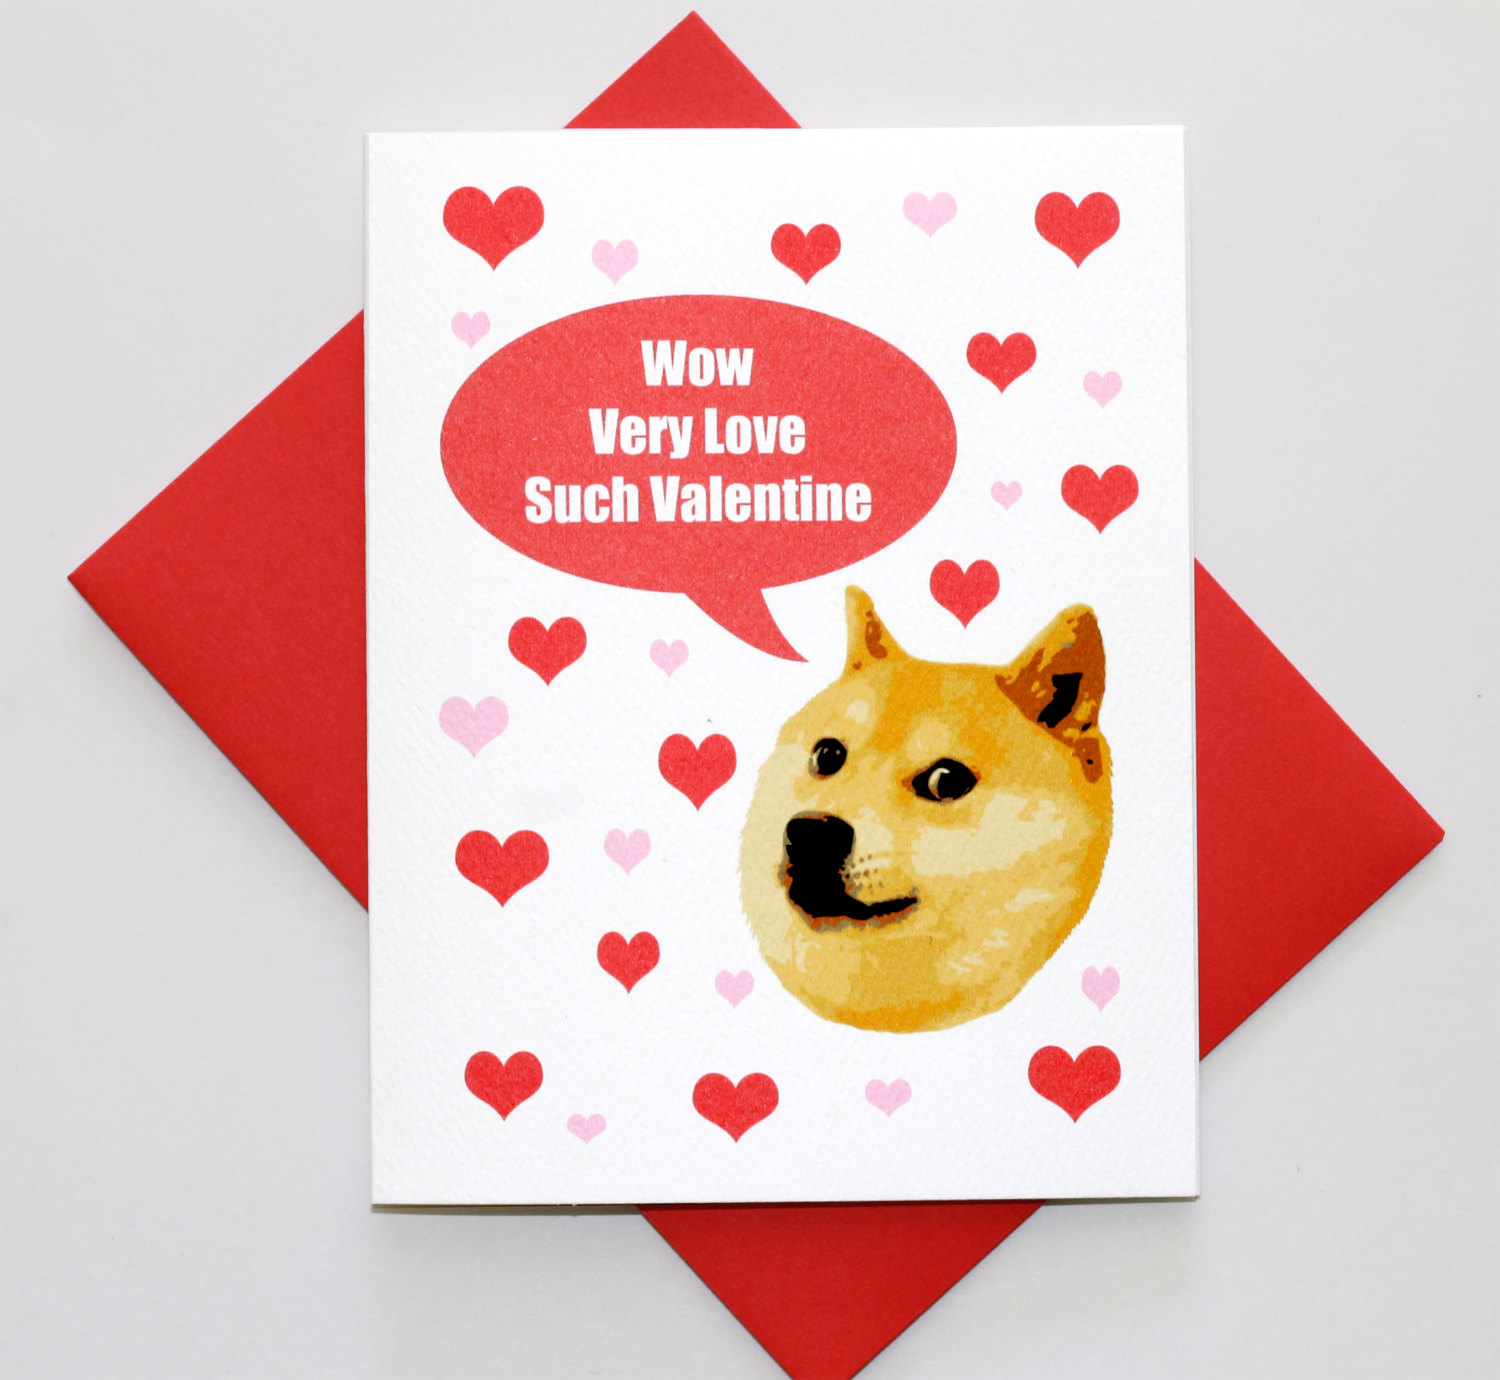 13 Funny Valentines To Give You Something To Laugh About On February